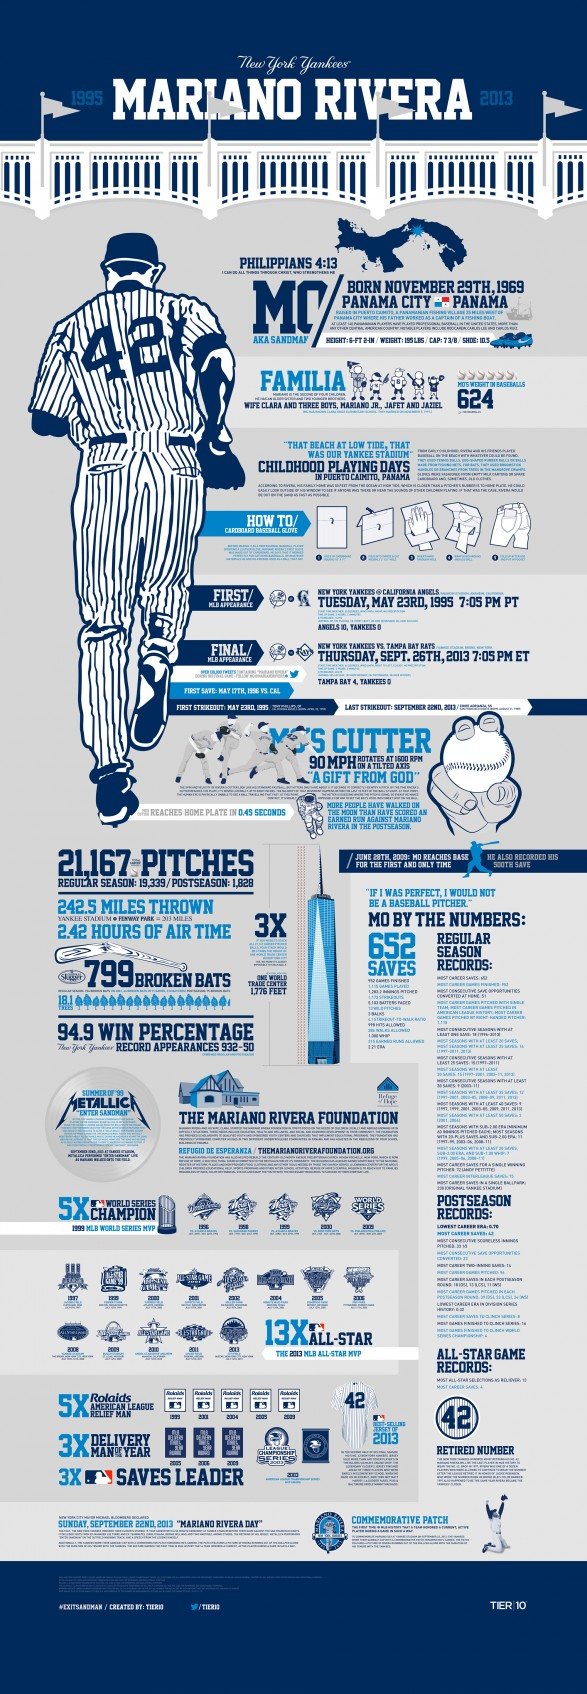 The Career Of Mariano Rivera